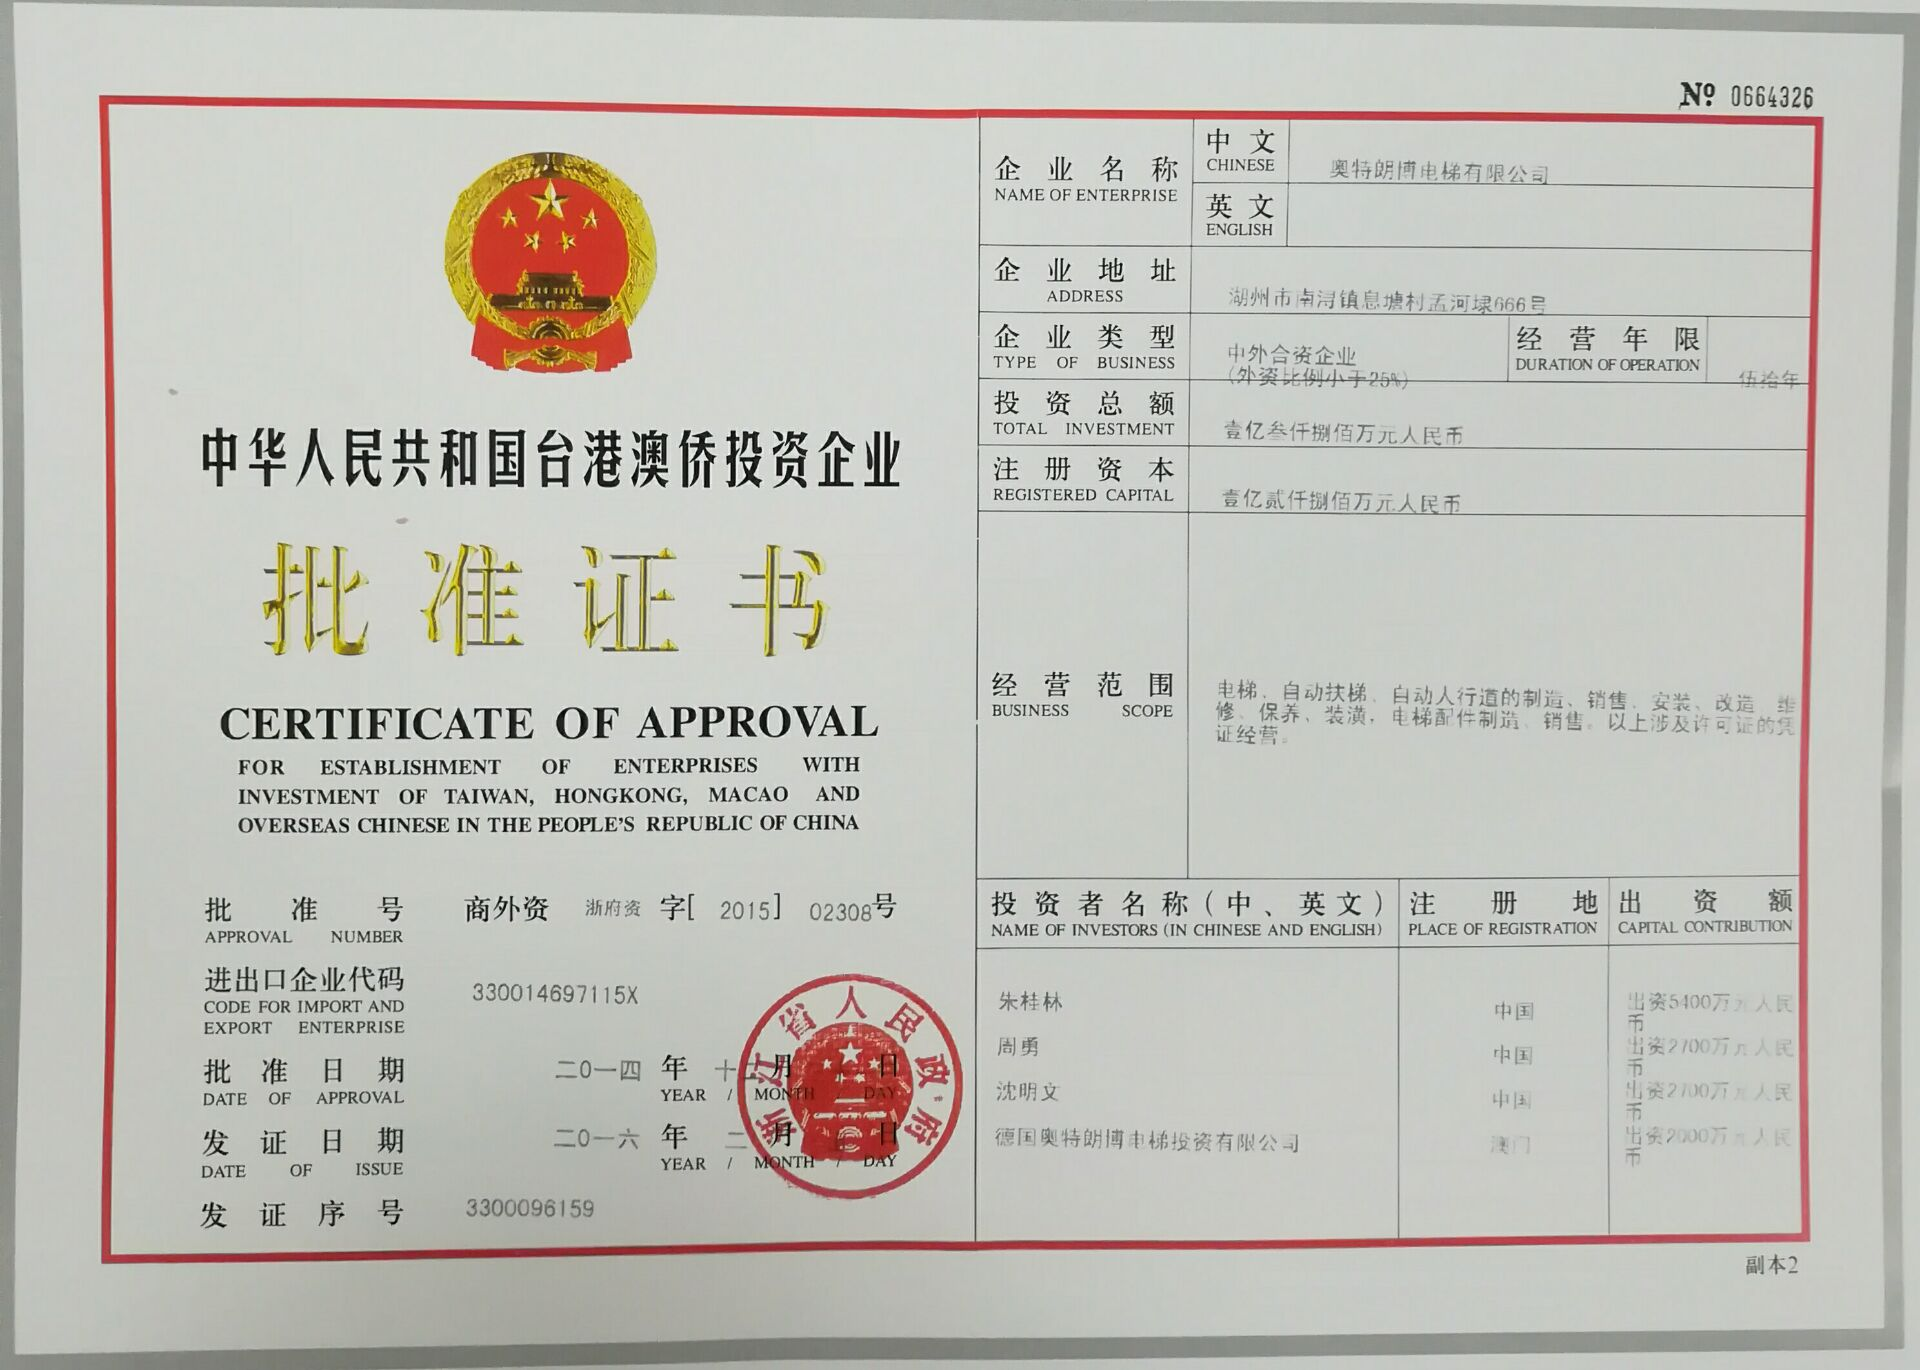 CERTIFICATE OF QPPROVAL for establishment of enterprises with investment of Taiwan, HongKong, Macao and overseas Chinese in PRC